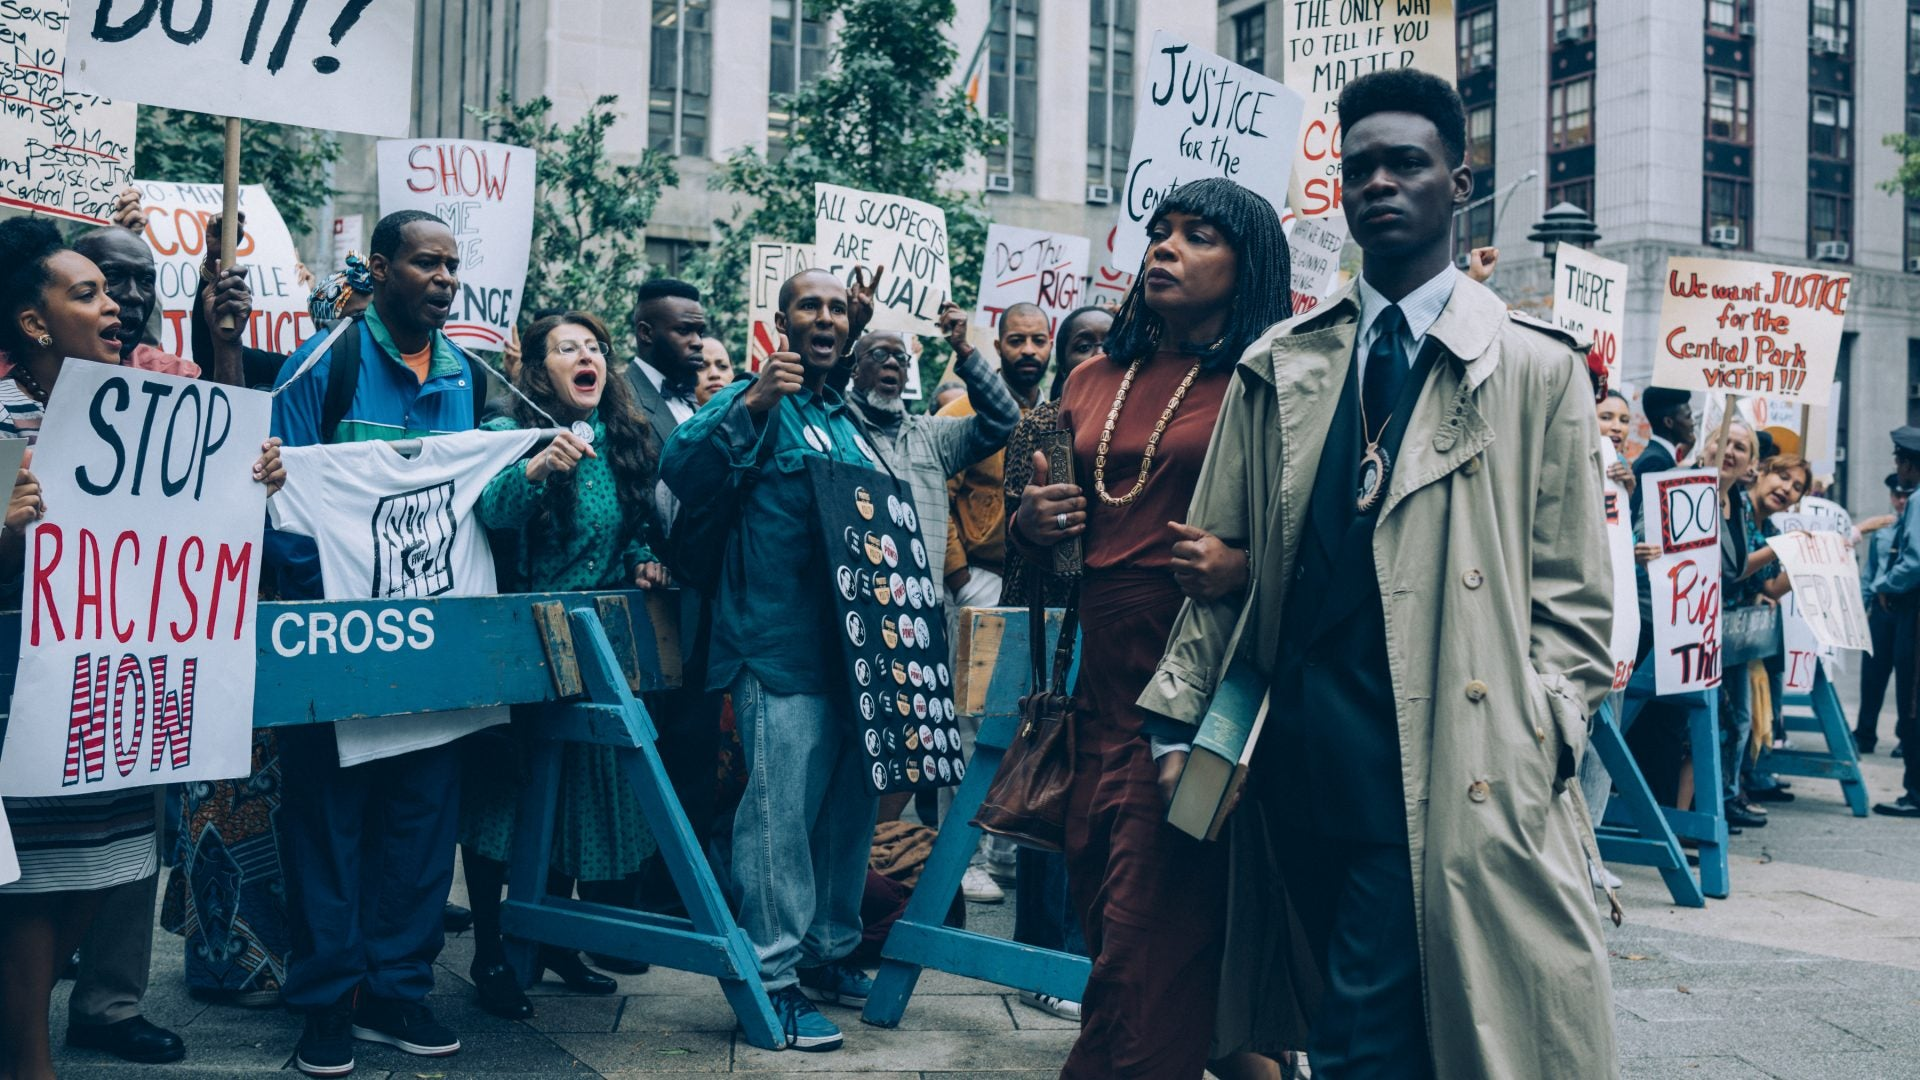 Here's Your First Look At Ava DuVernay's Series On The Central Park Five